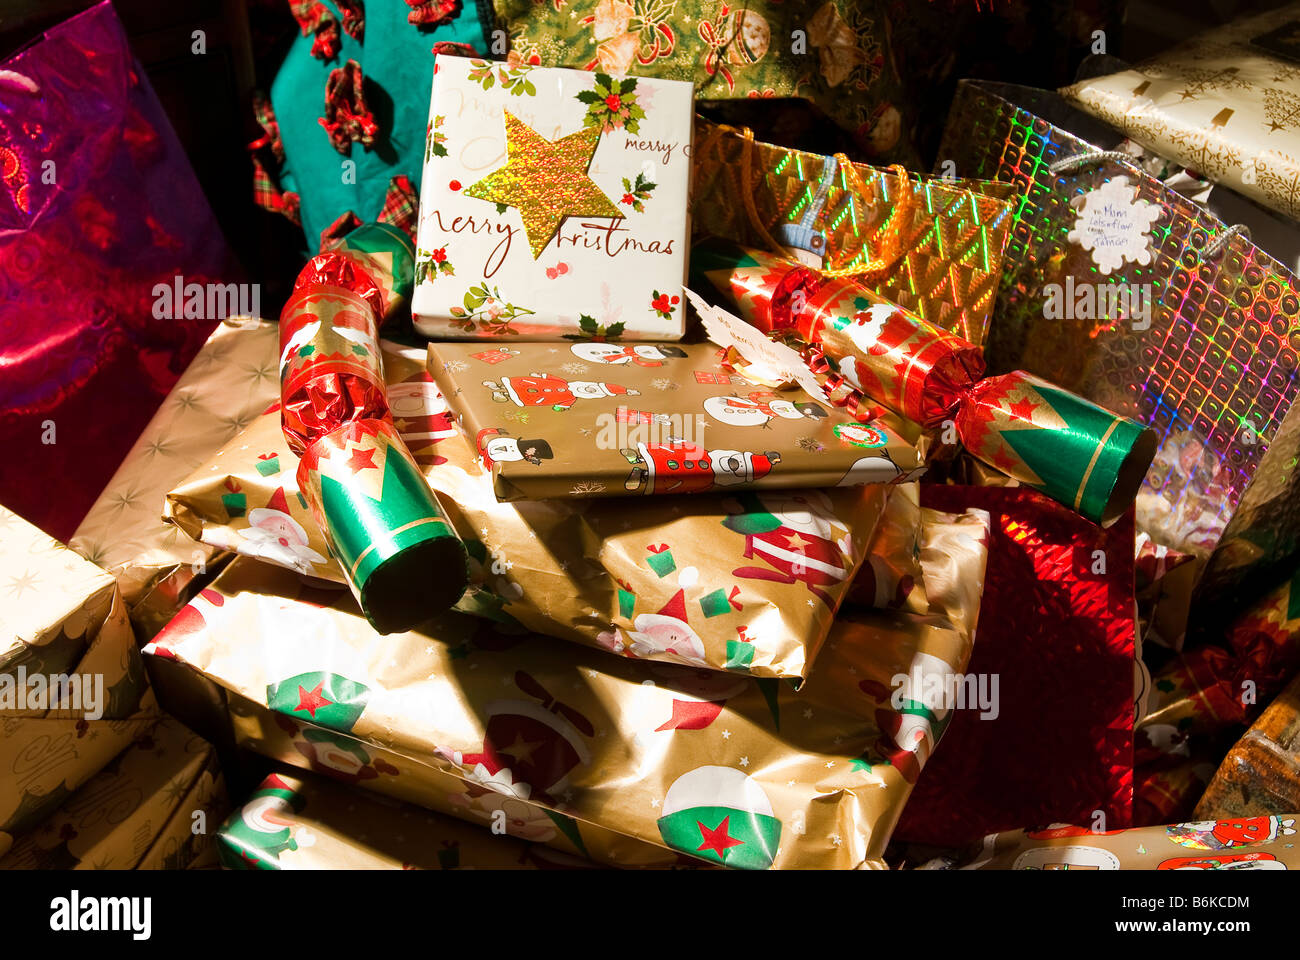 Christmas presents in a pile. - Stock Image